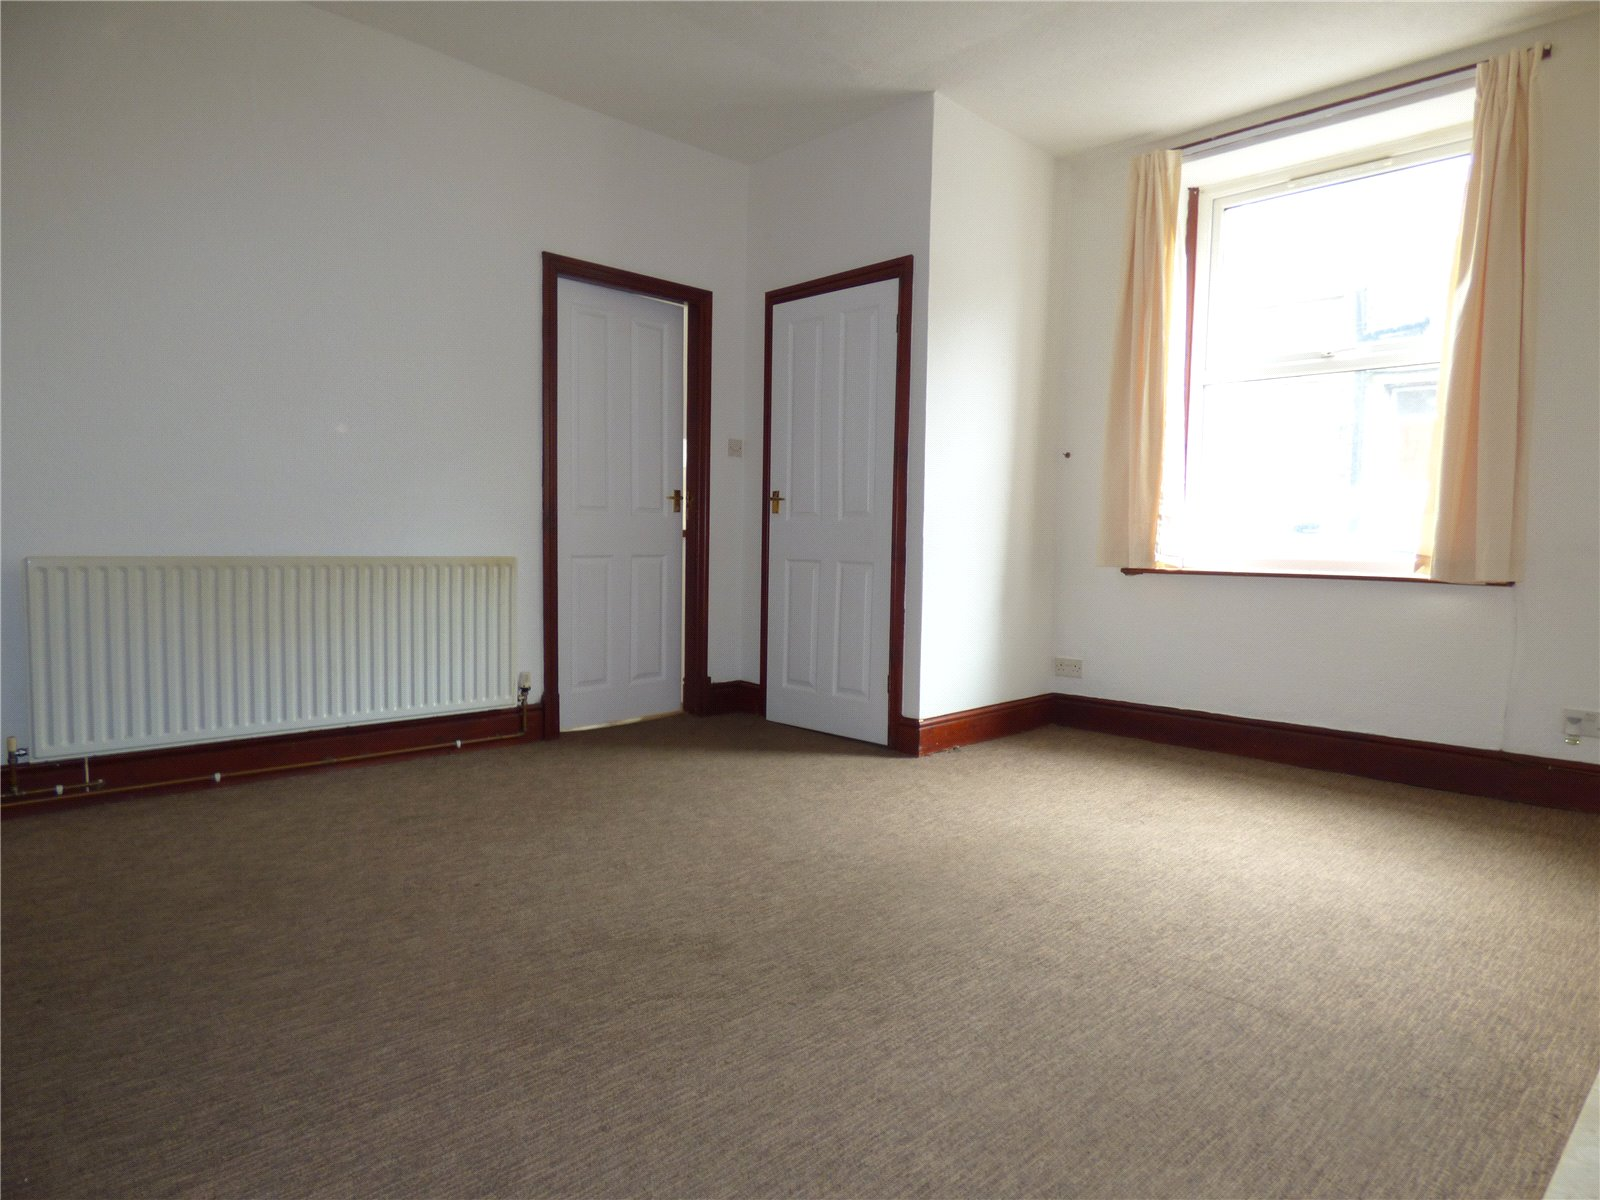 2 Bedrooms Terraced House for sale in Comet Street, Weir, Bacup, Lancashire, OL13